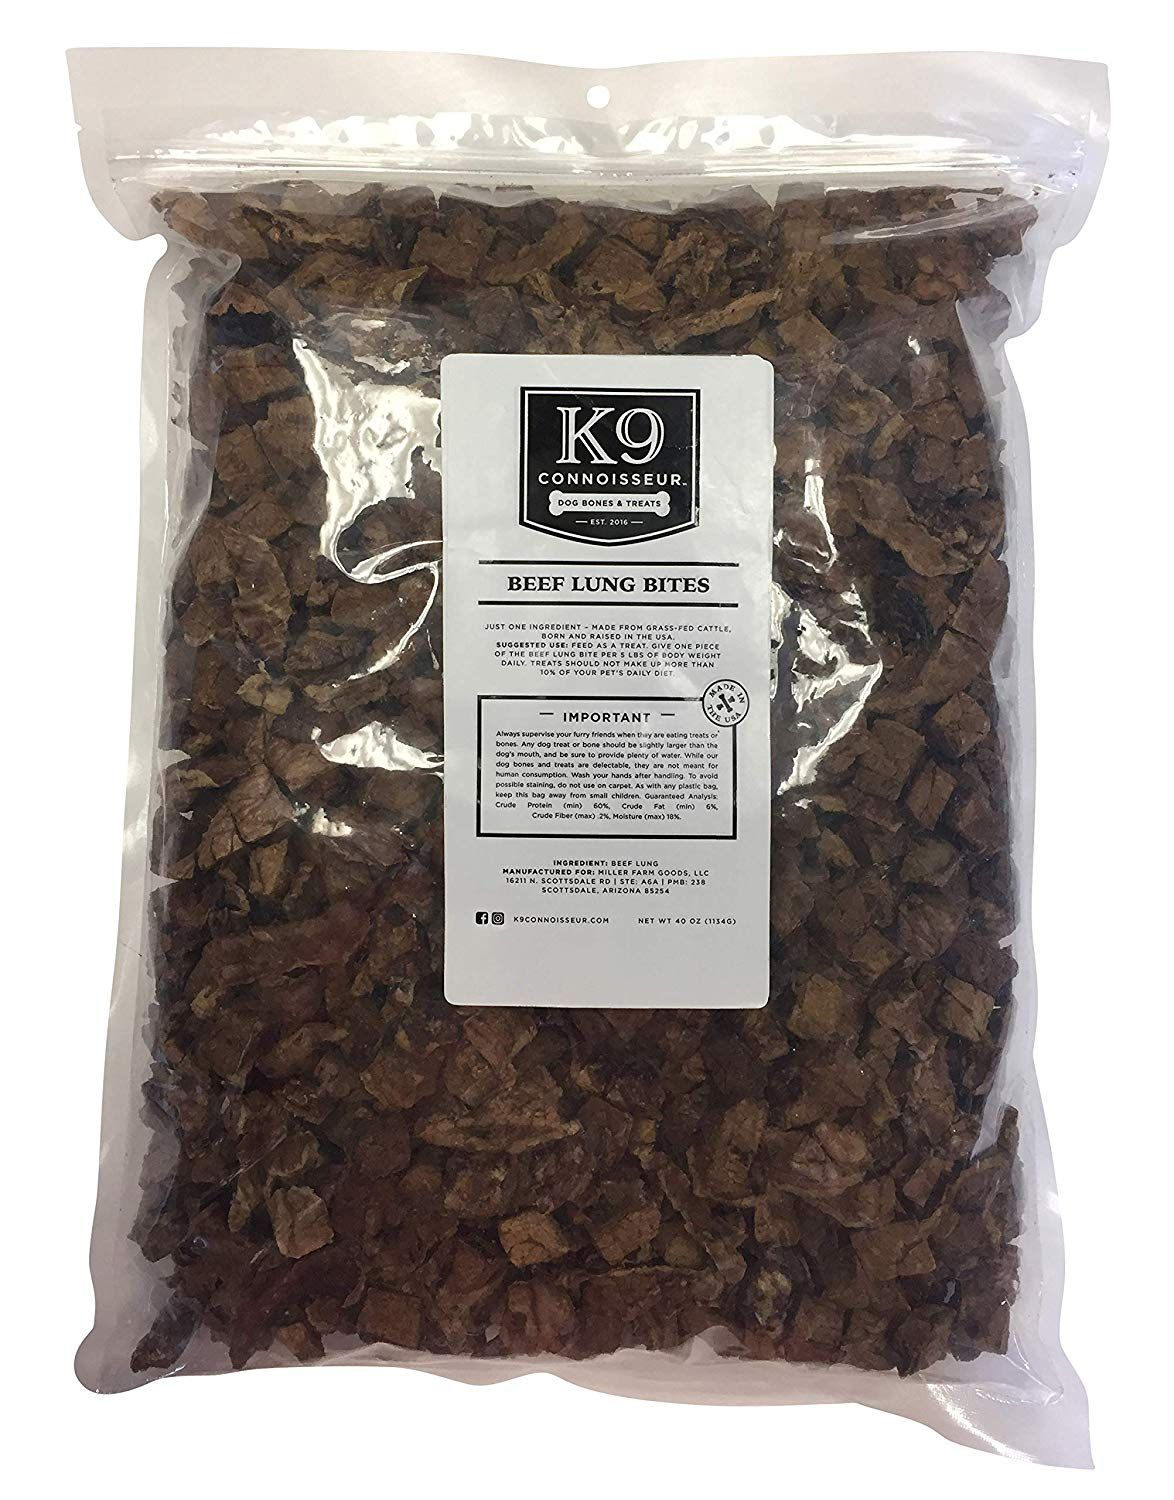 K9 Connoisseur Dog Lung Bites Treats Made in The USA